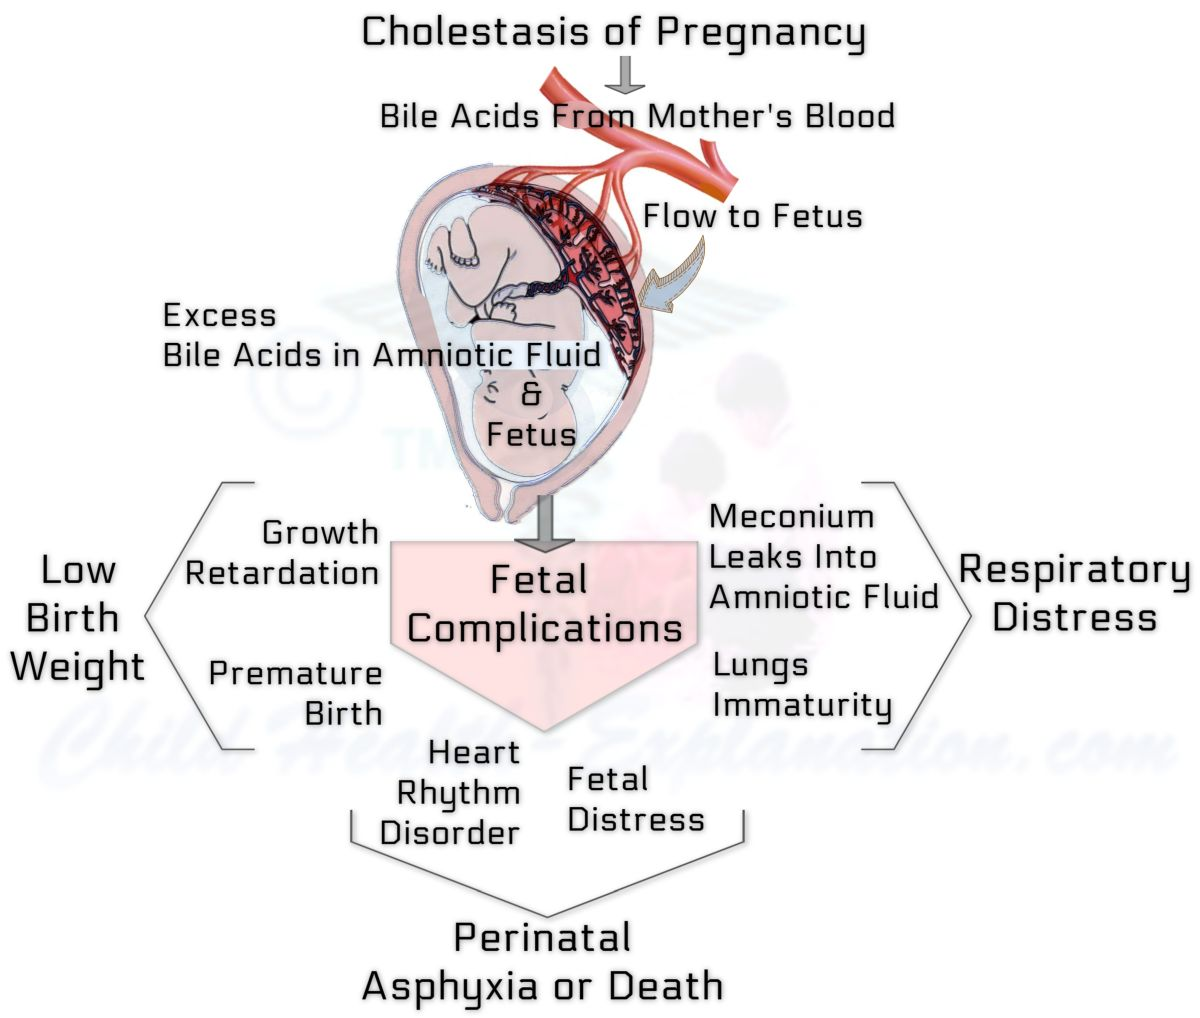 Fetal Complications of Cholestasis of Pregnancy